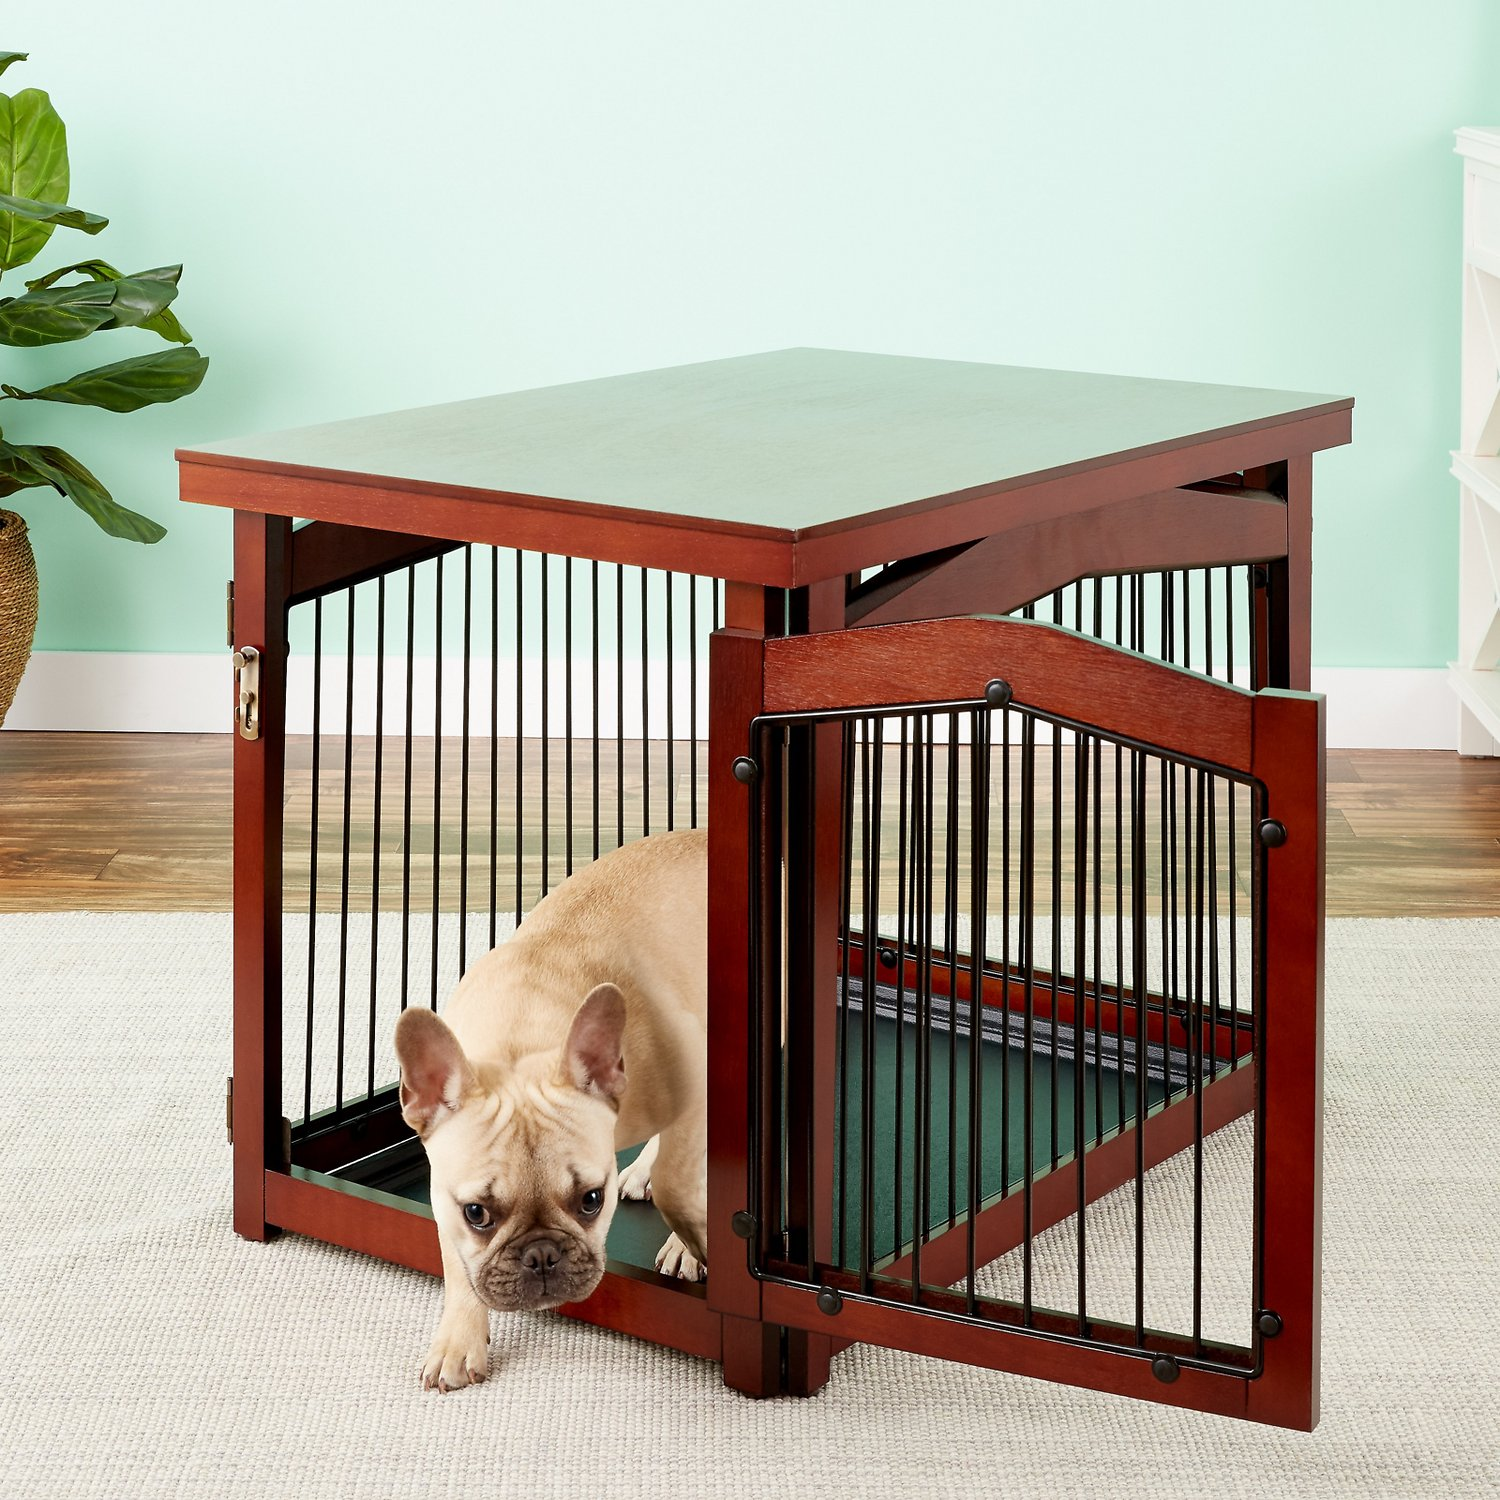 A Furniture: Merry Products 2-in-1 Configurable Dog & Cat Crate & Gate